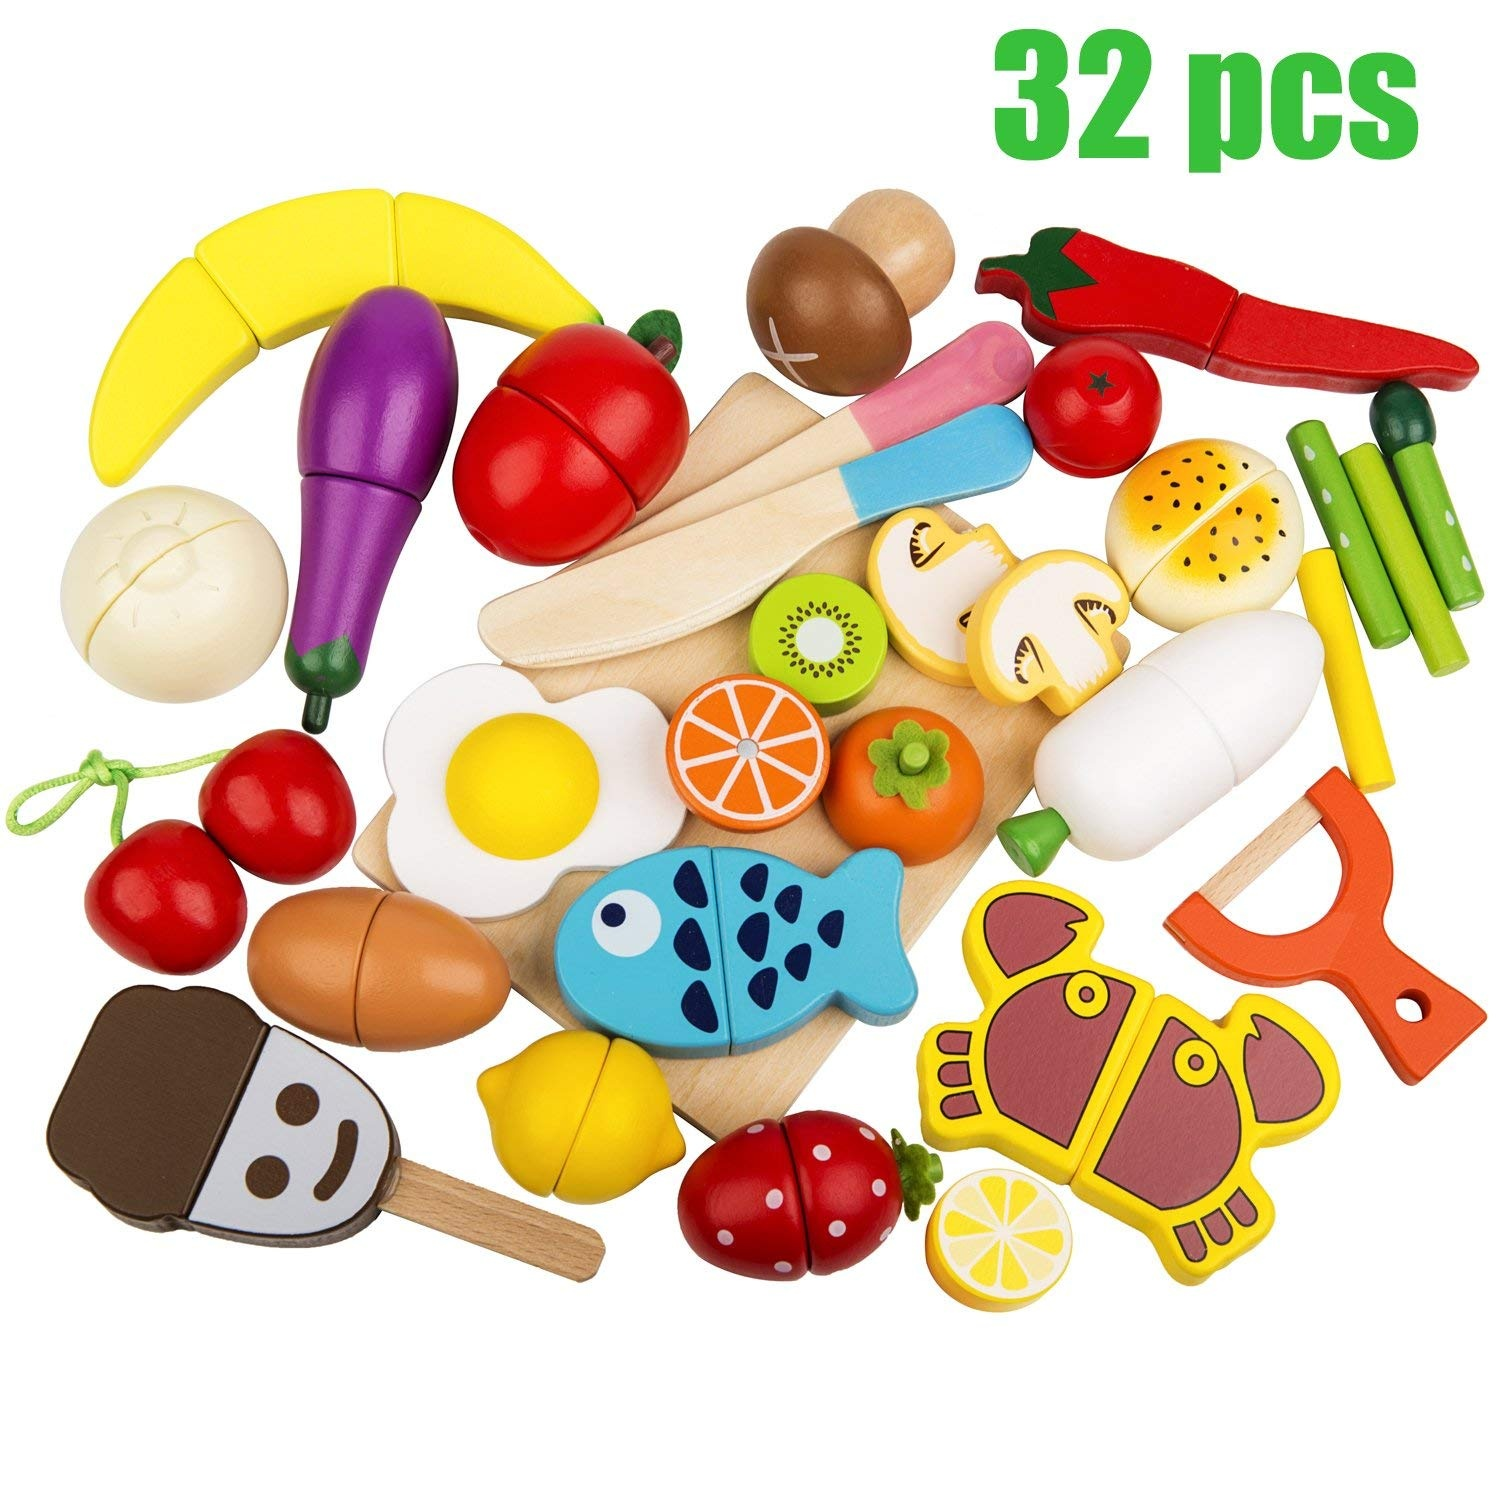 eca046b133a4c Wooden Vegetable Basket Toys Toys  Buy Online from Fishpond.co.nz